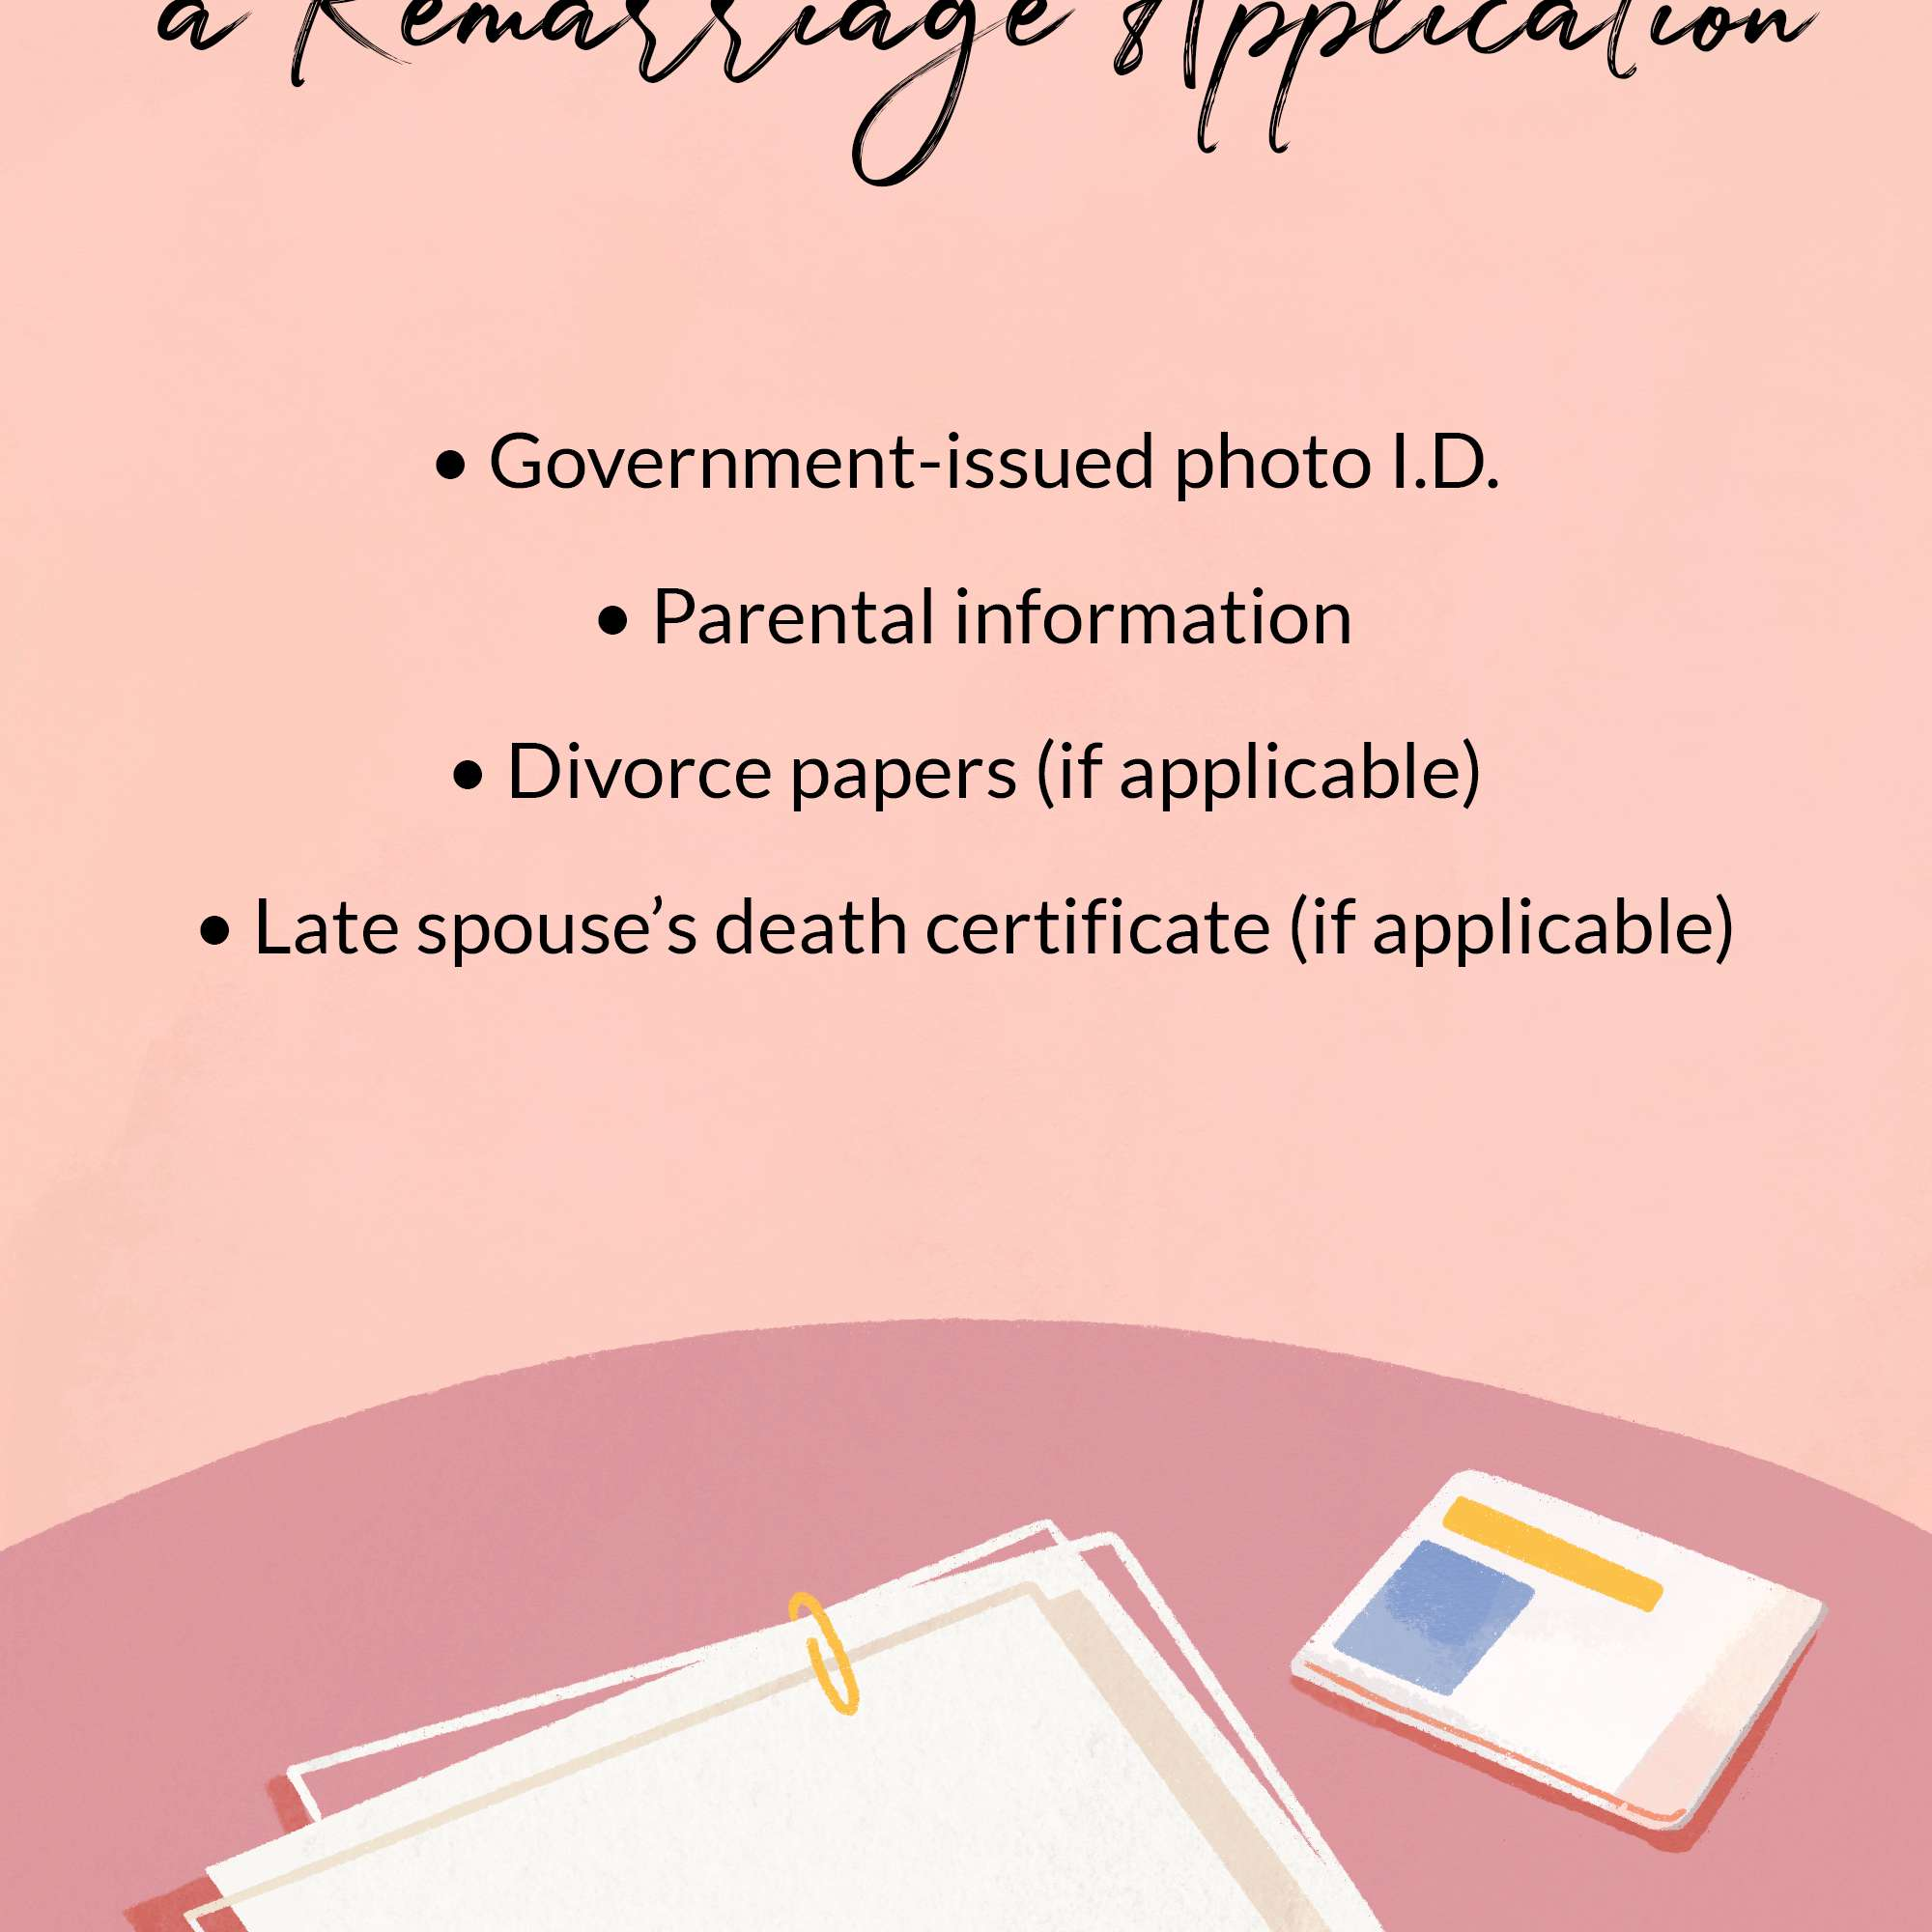 remarriage application